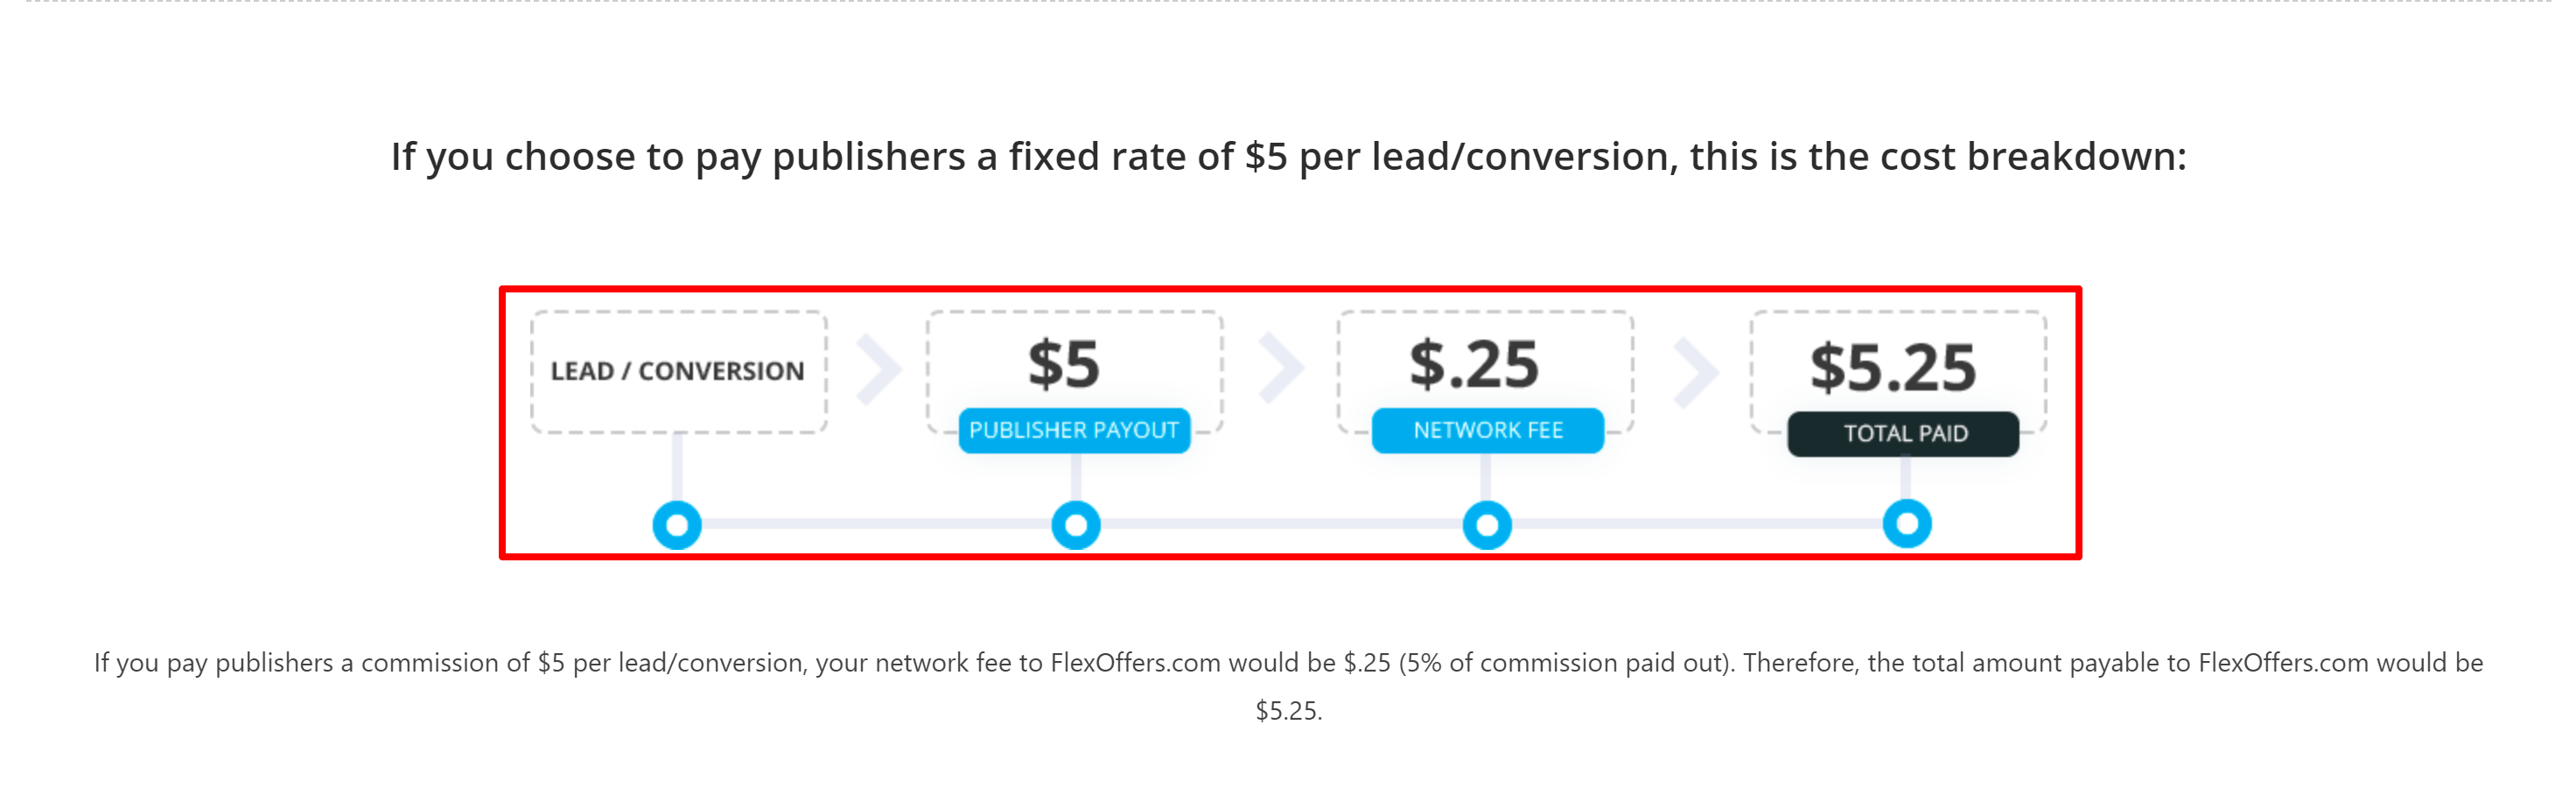 FlexOffers pricing per lead